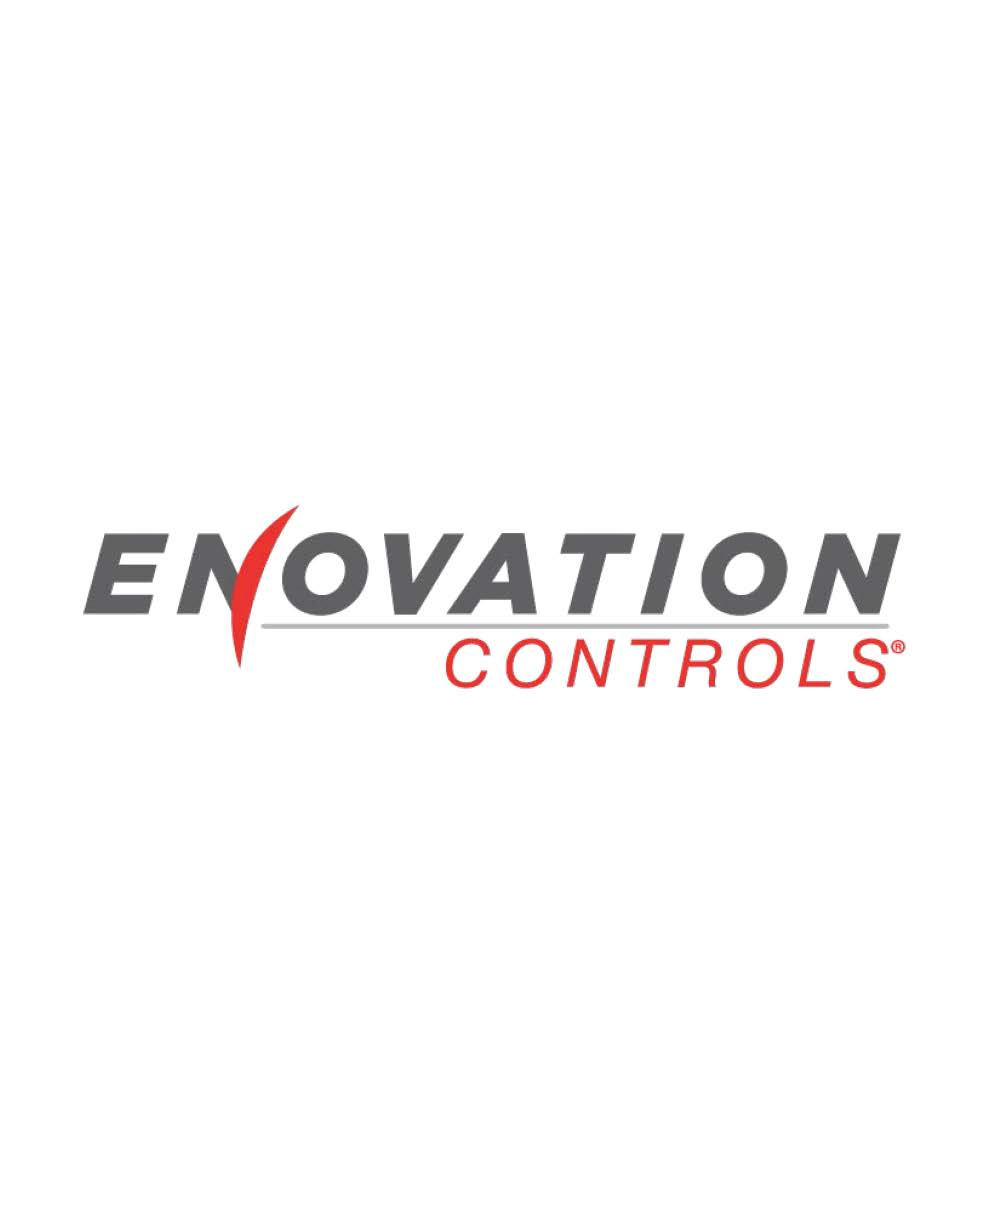 Enovation Controls Logo .jpg